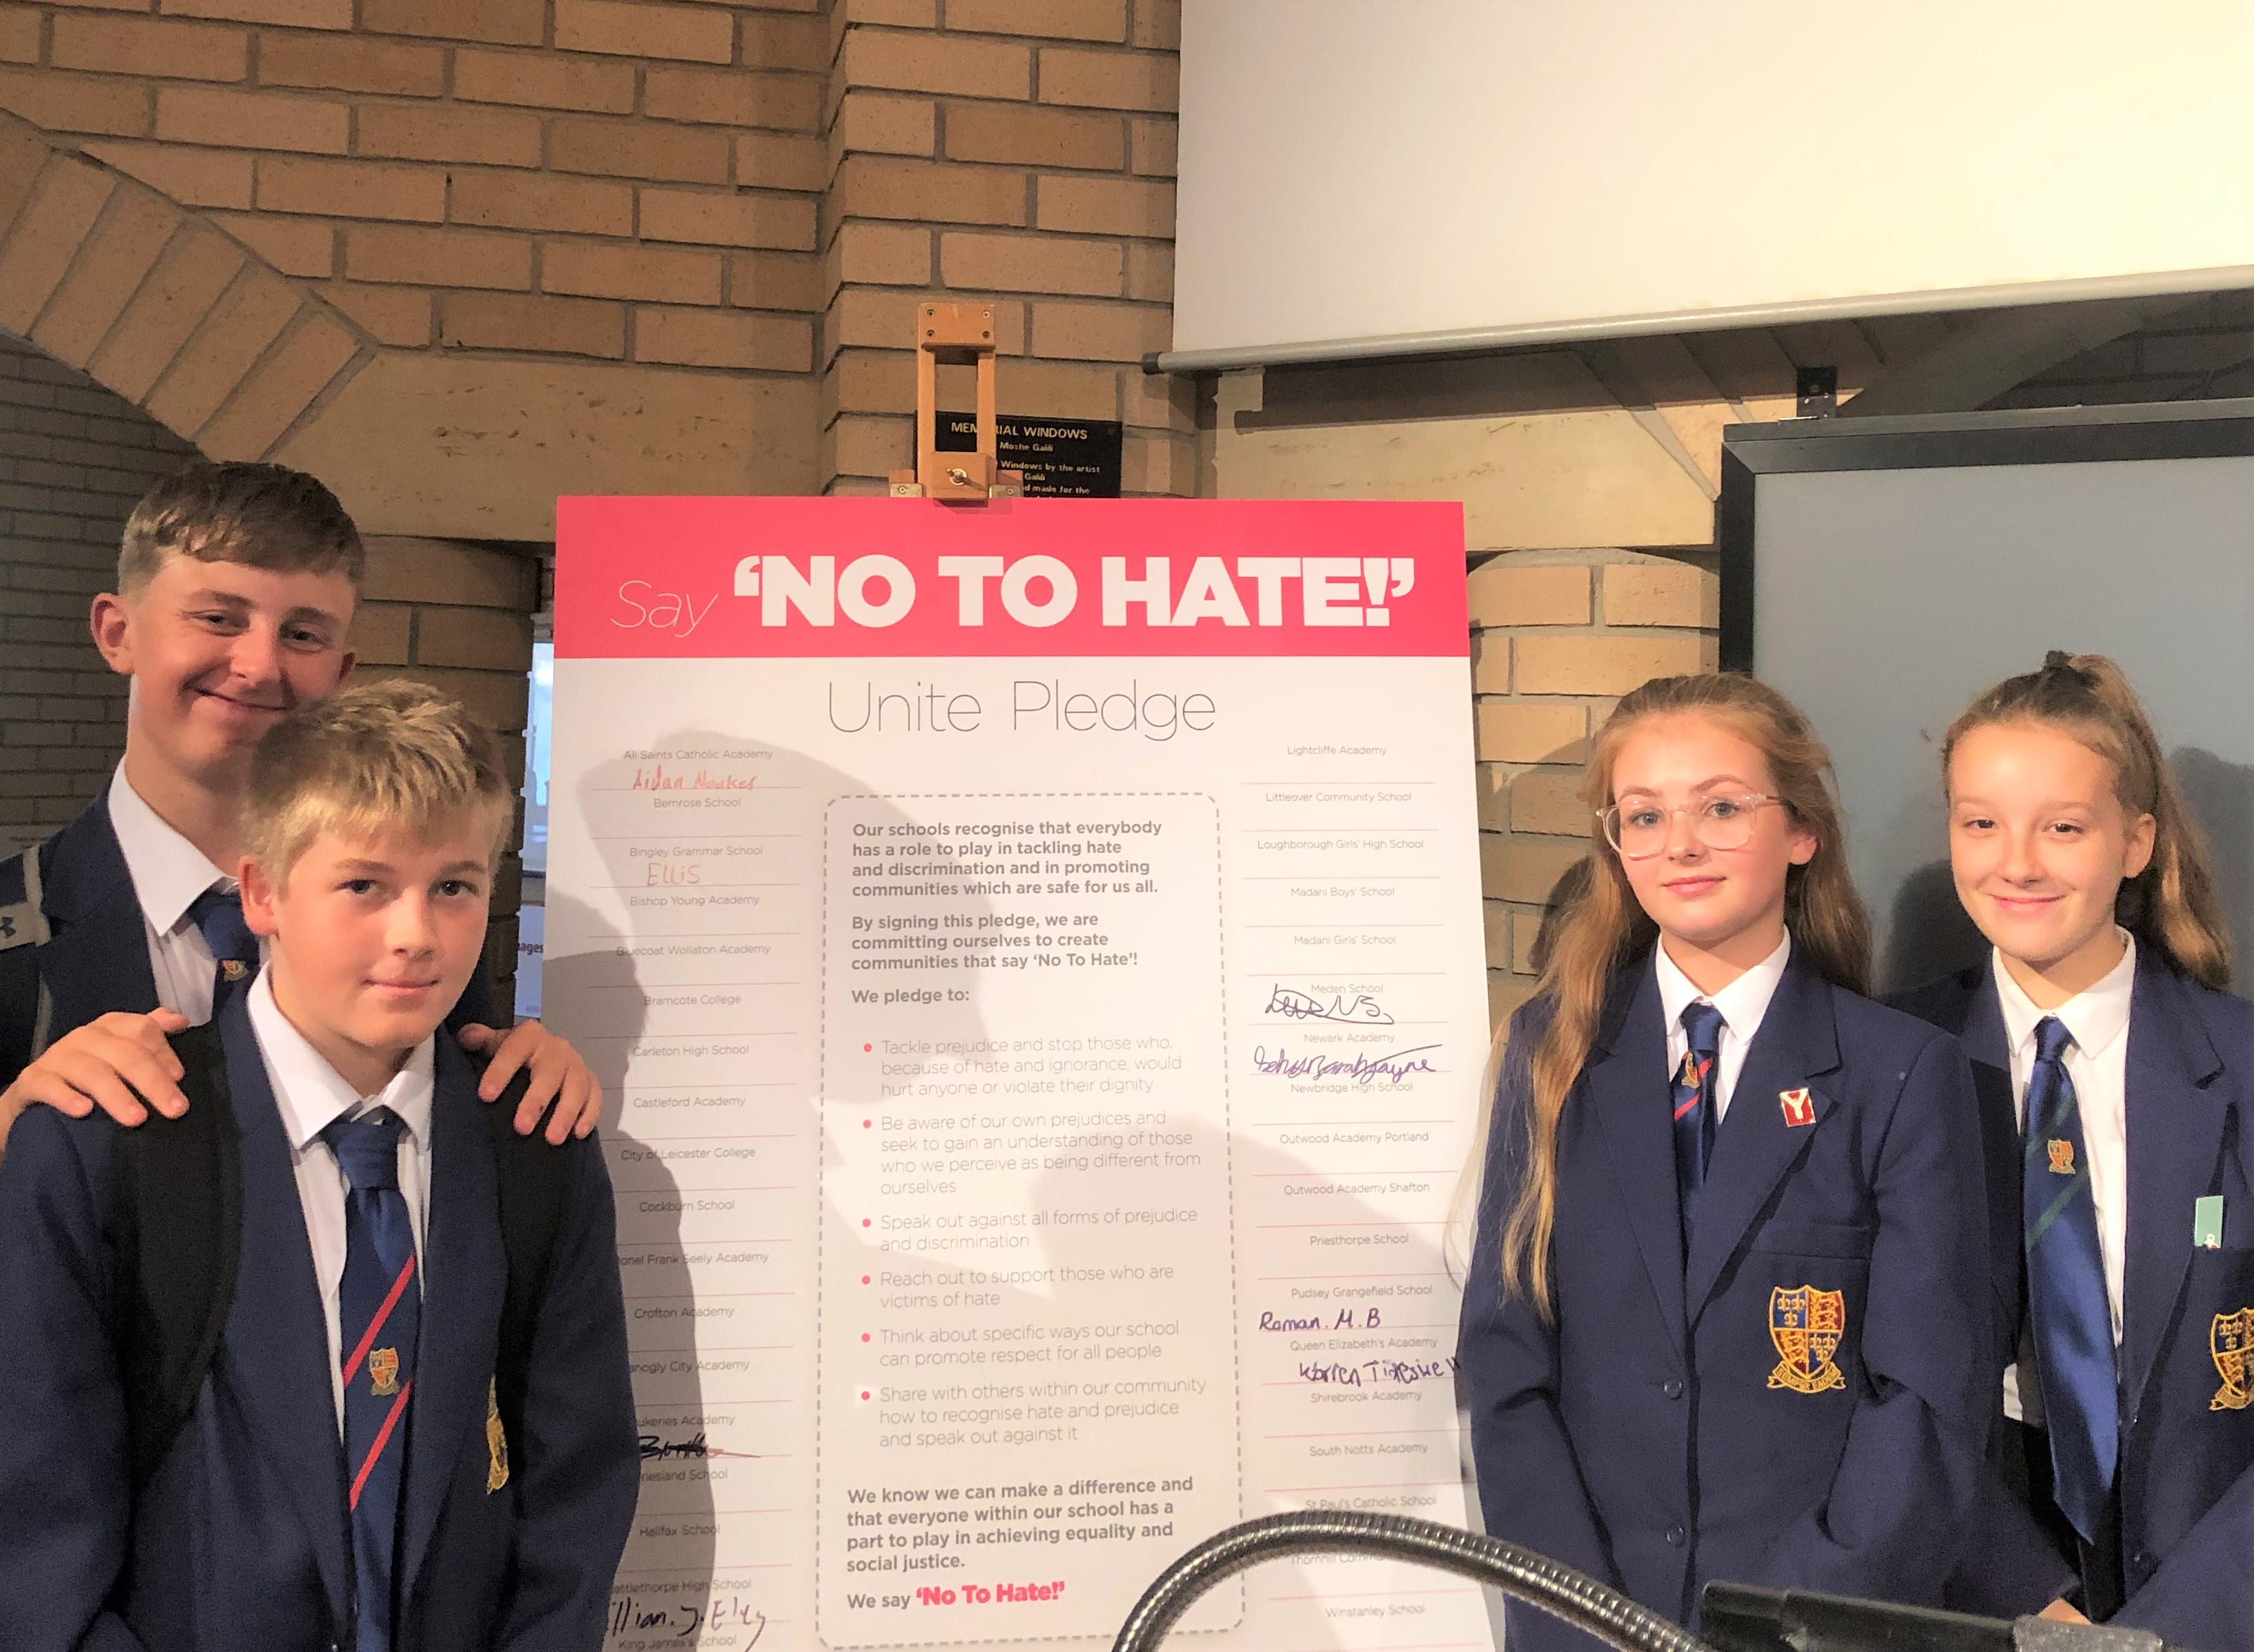 Students say 'No to Hate' as part of important project